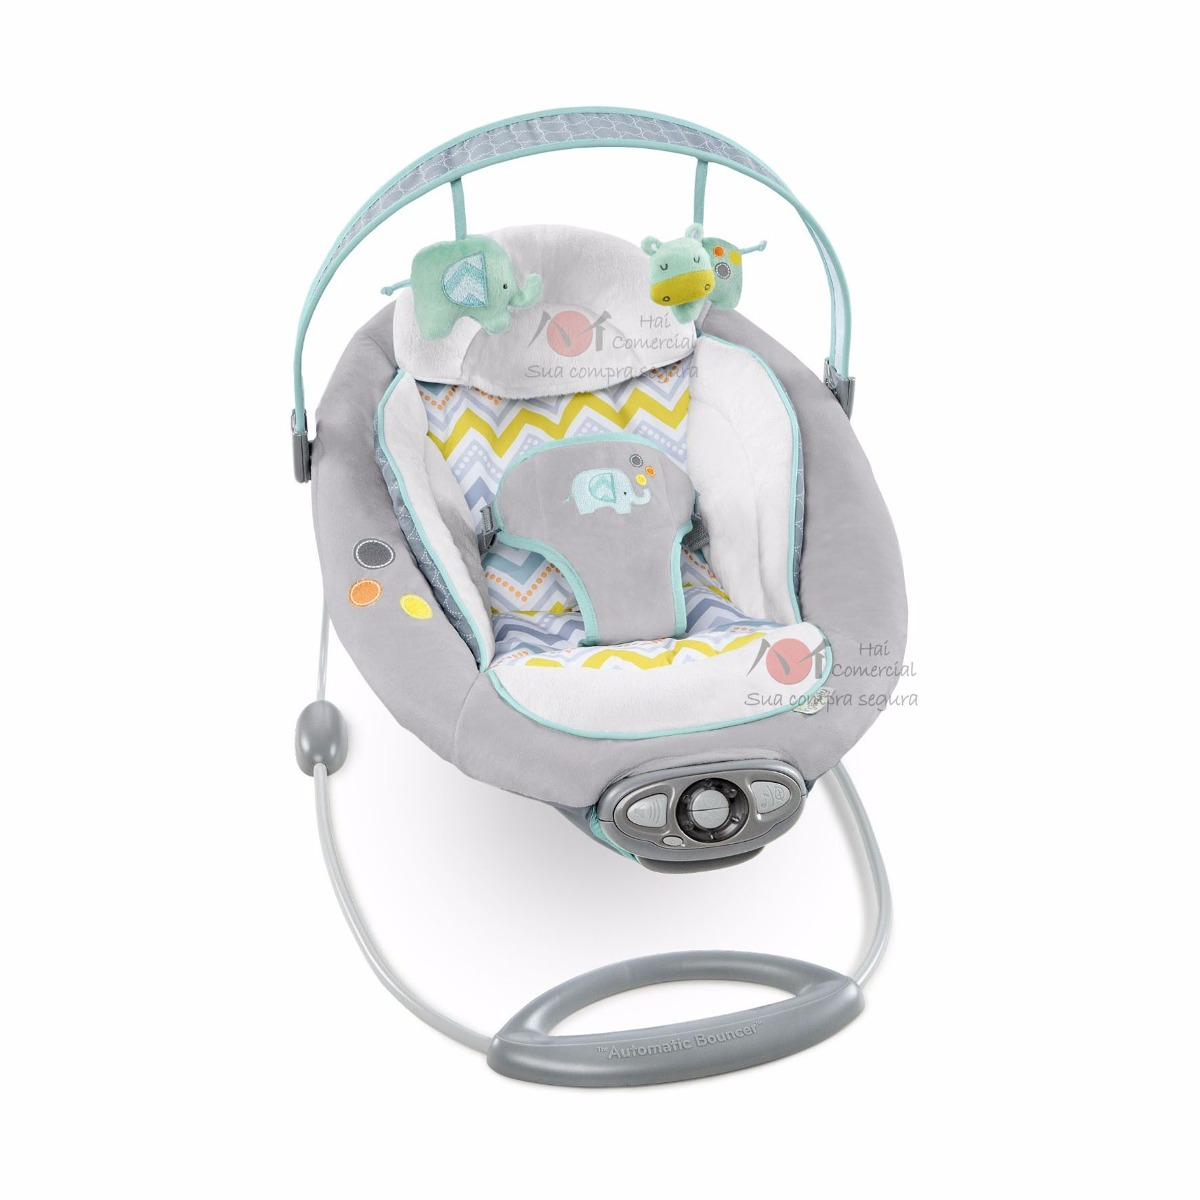 bright starts ingenuity automatic bouncer owners manual